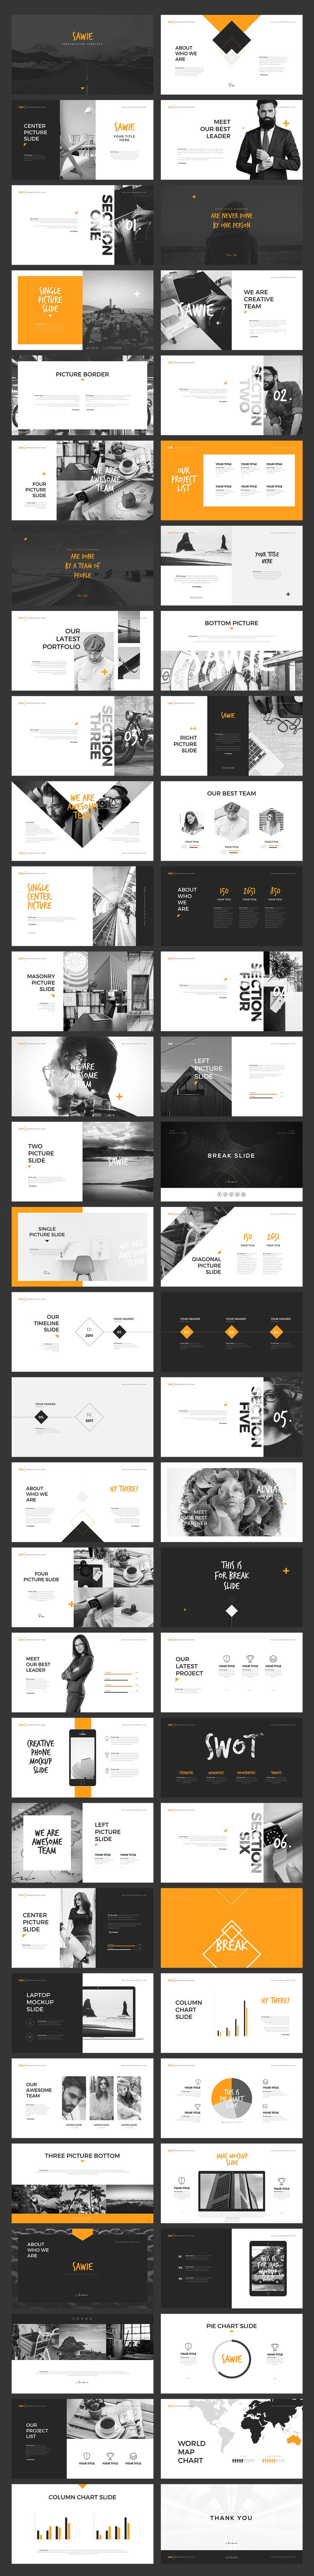 SAWIE Keynote Template by Angkalimabelas on @creativemarket